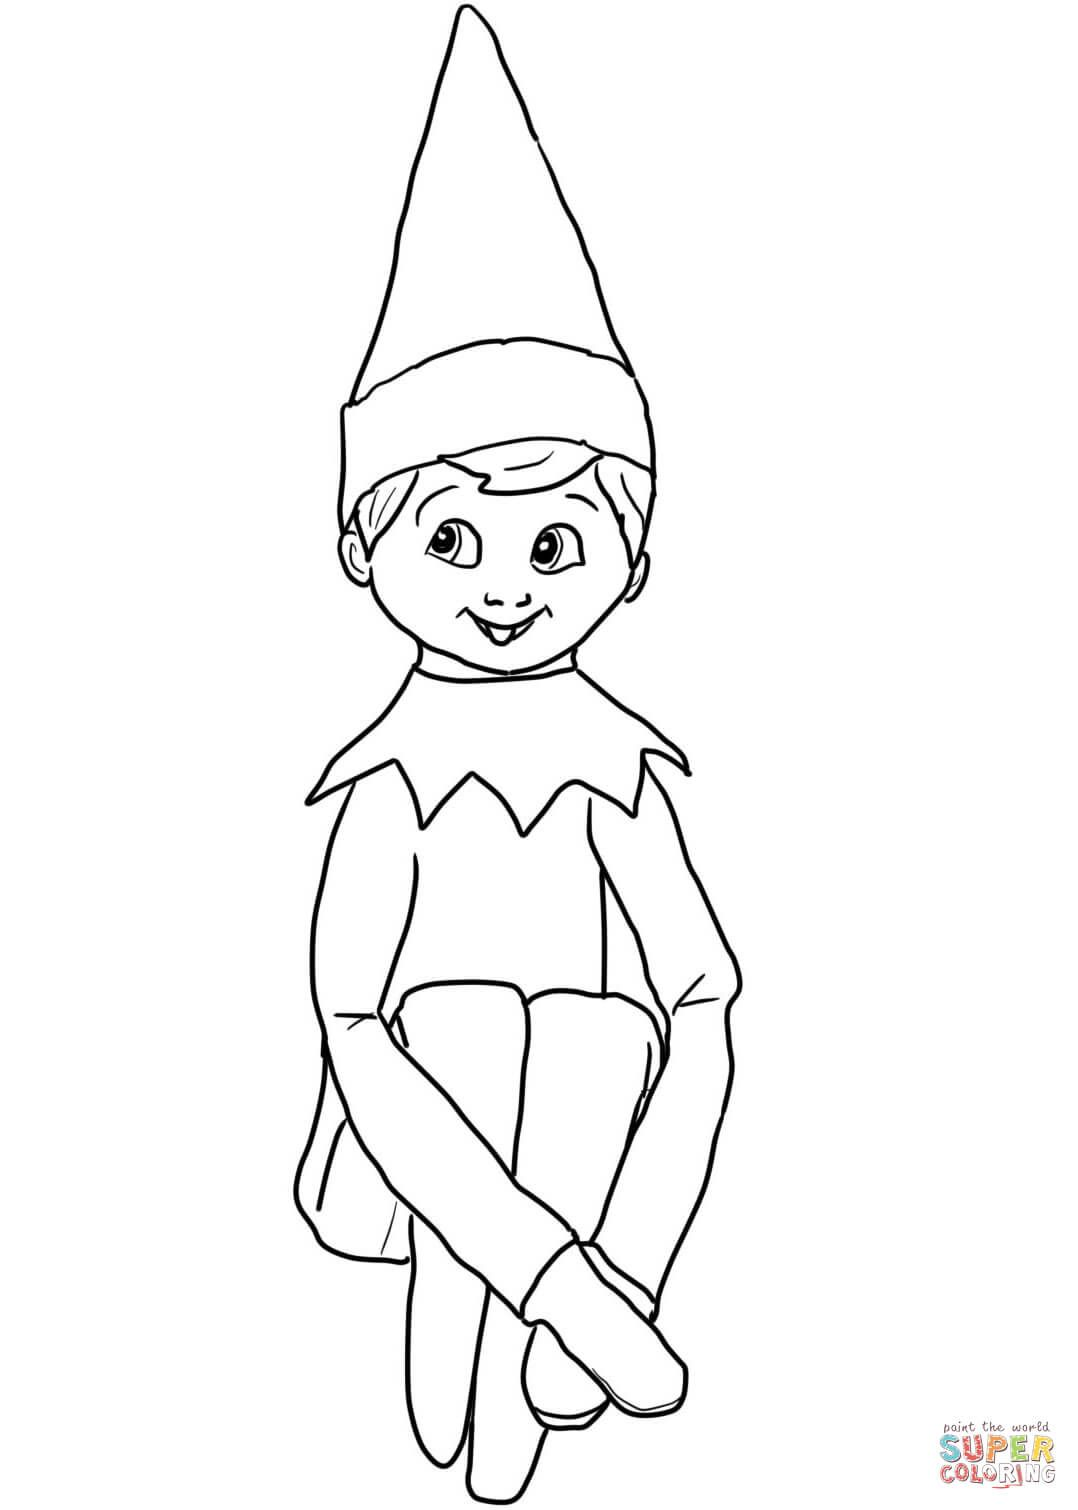 Christmas elf on shelf coloring page from elf on the shelf category select from 27007 printable crafts of cartoons nature animals bible and many more